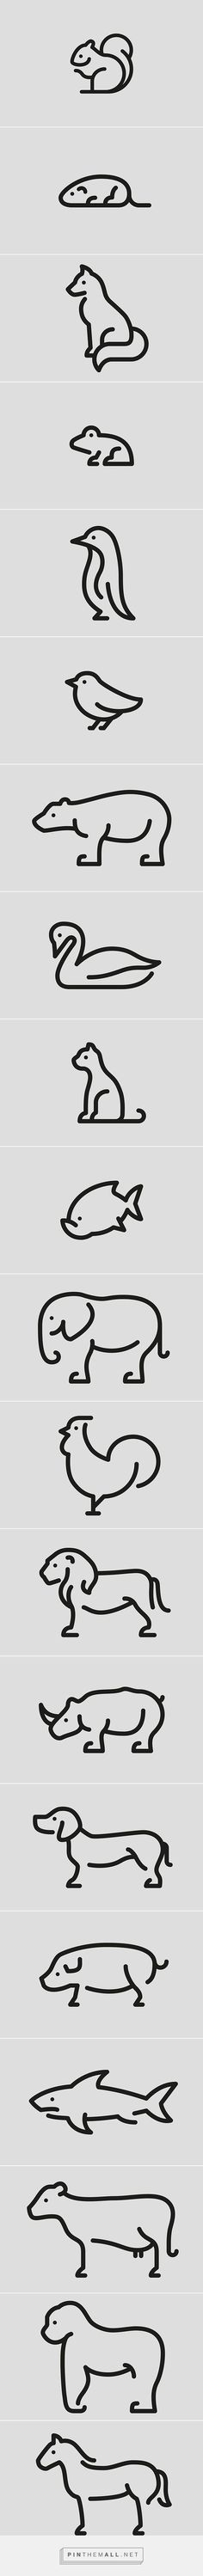 Animal Pictograms on Behance: